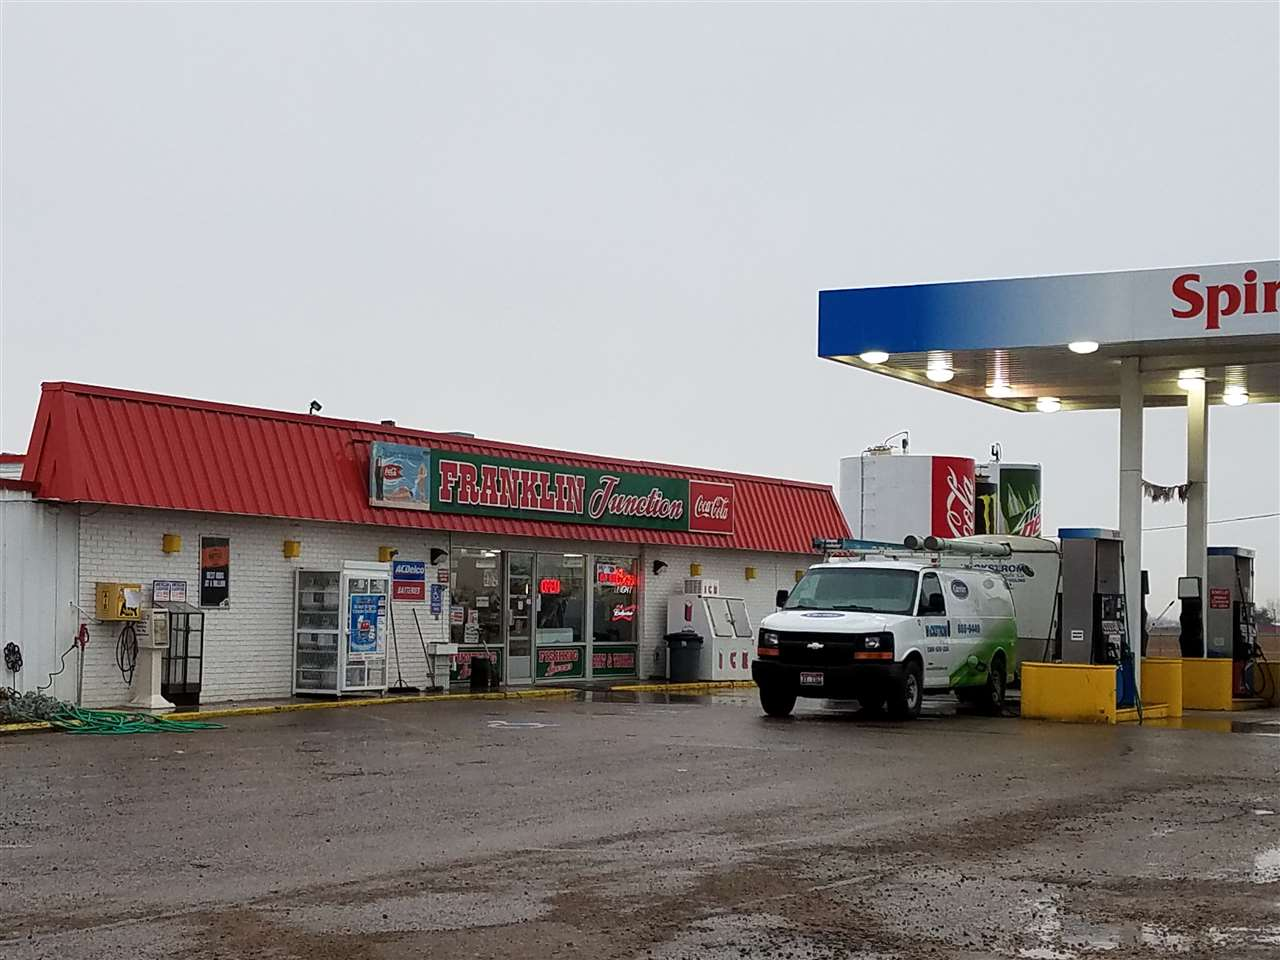 8059 HWY,Nampa,Idaho 83687,Business/Commercial,8059 HWY,98680055